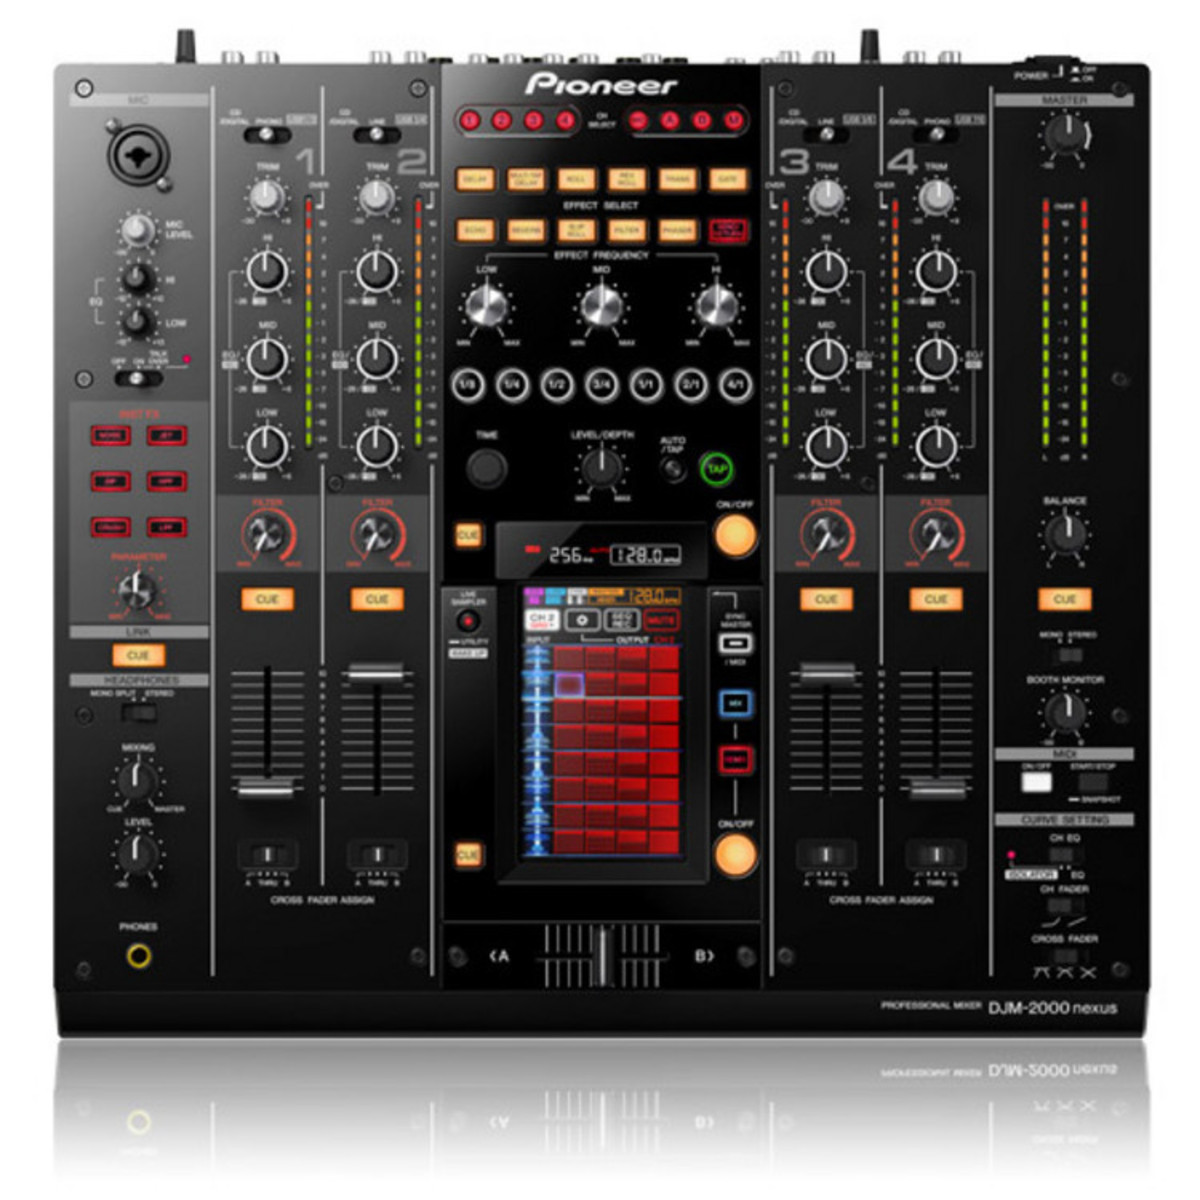 disc pioneer table de mixage djm 2000 nexus 4 canaux dj. Black Bedroom Furniture Sets. Home Design Ideas